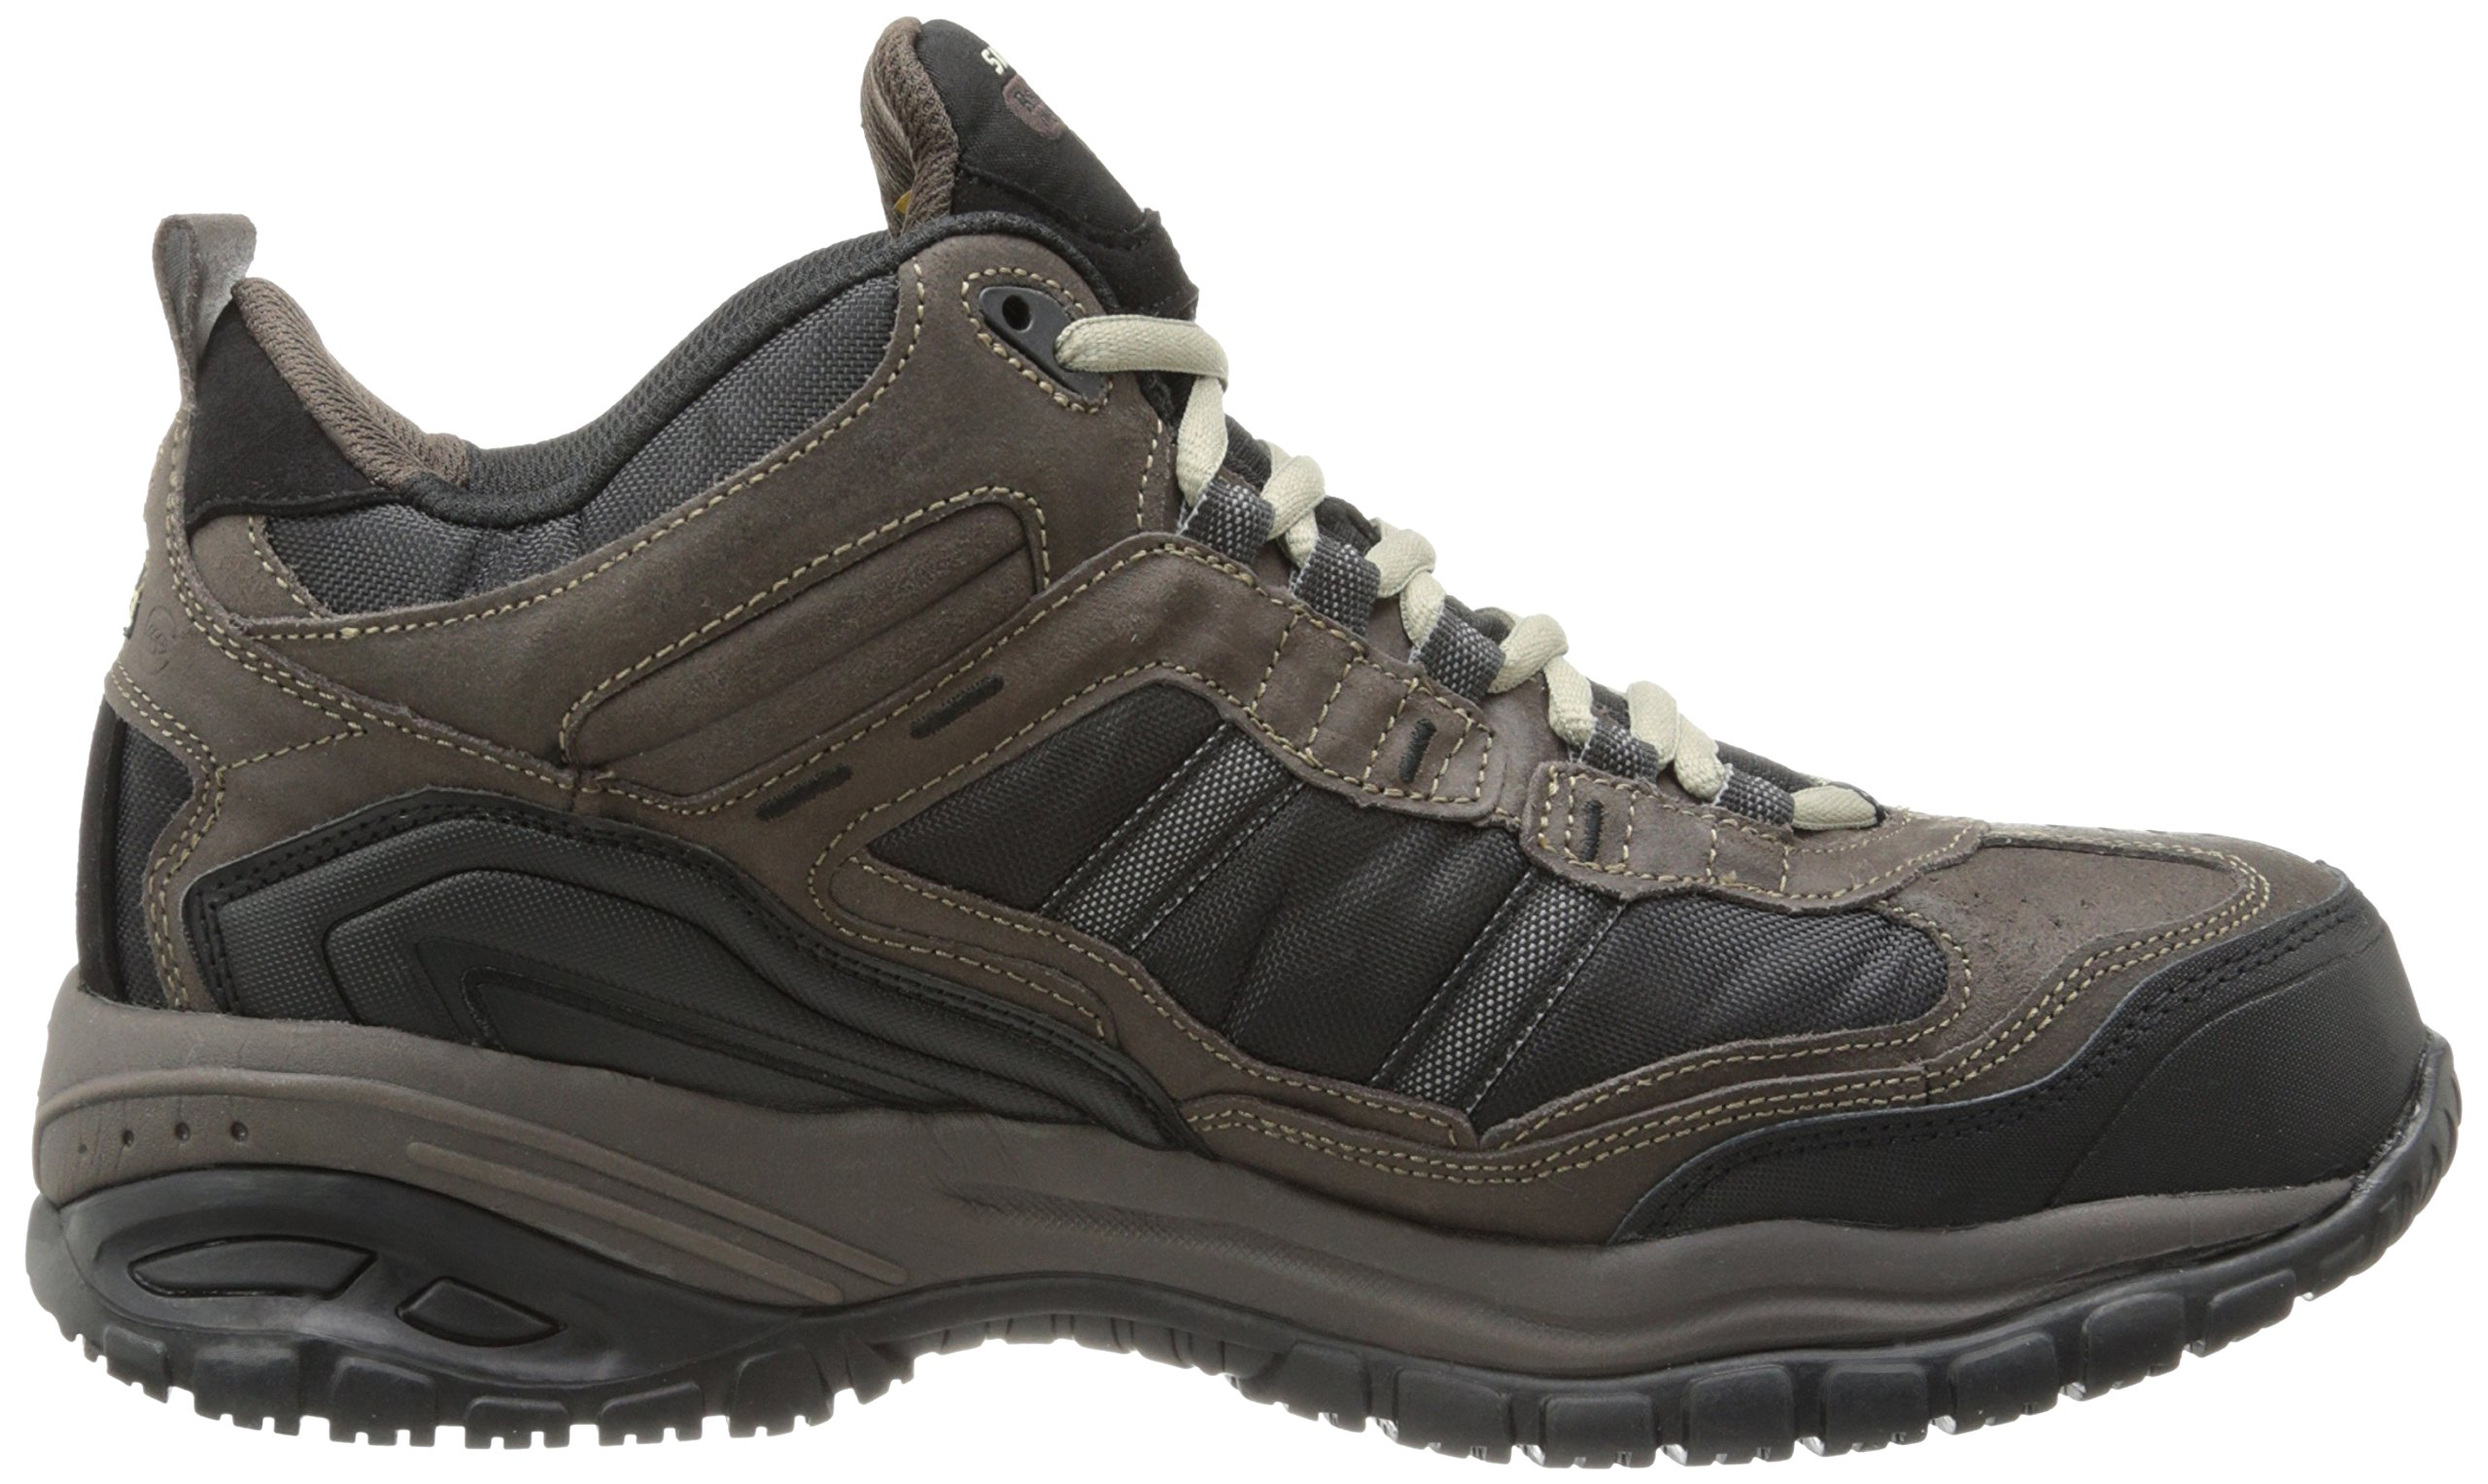 Skechers Men's Work Relaxed Fit Soft Stride Canopy Comp Toe Shoe, Brown/Black - 11.5 3E US by Skechers (Image #7)